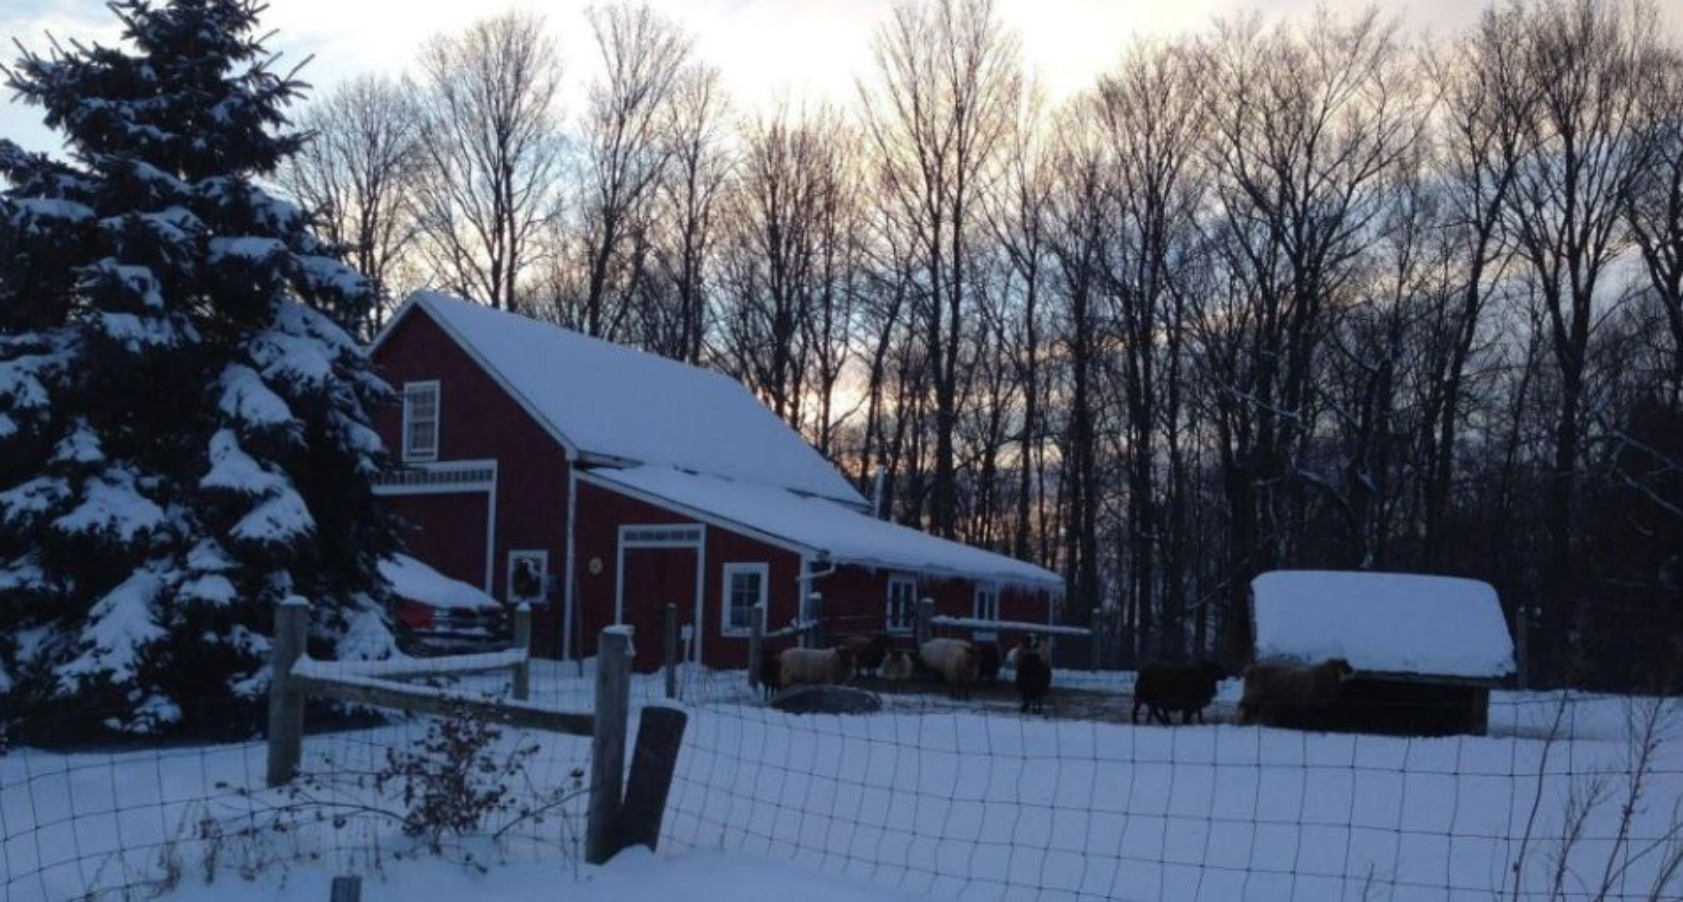 A house covered in snow at Bryn Meadow Farm B&B.